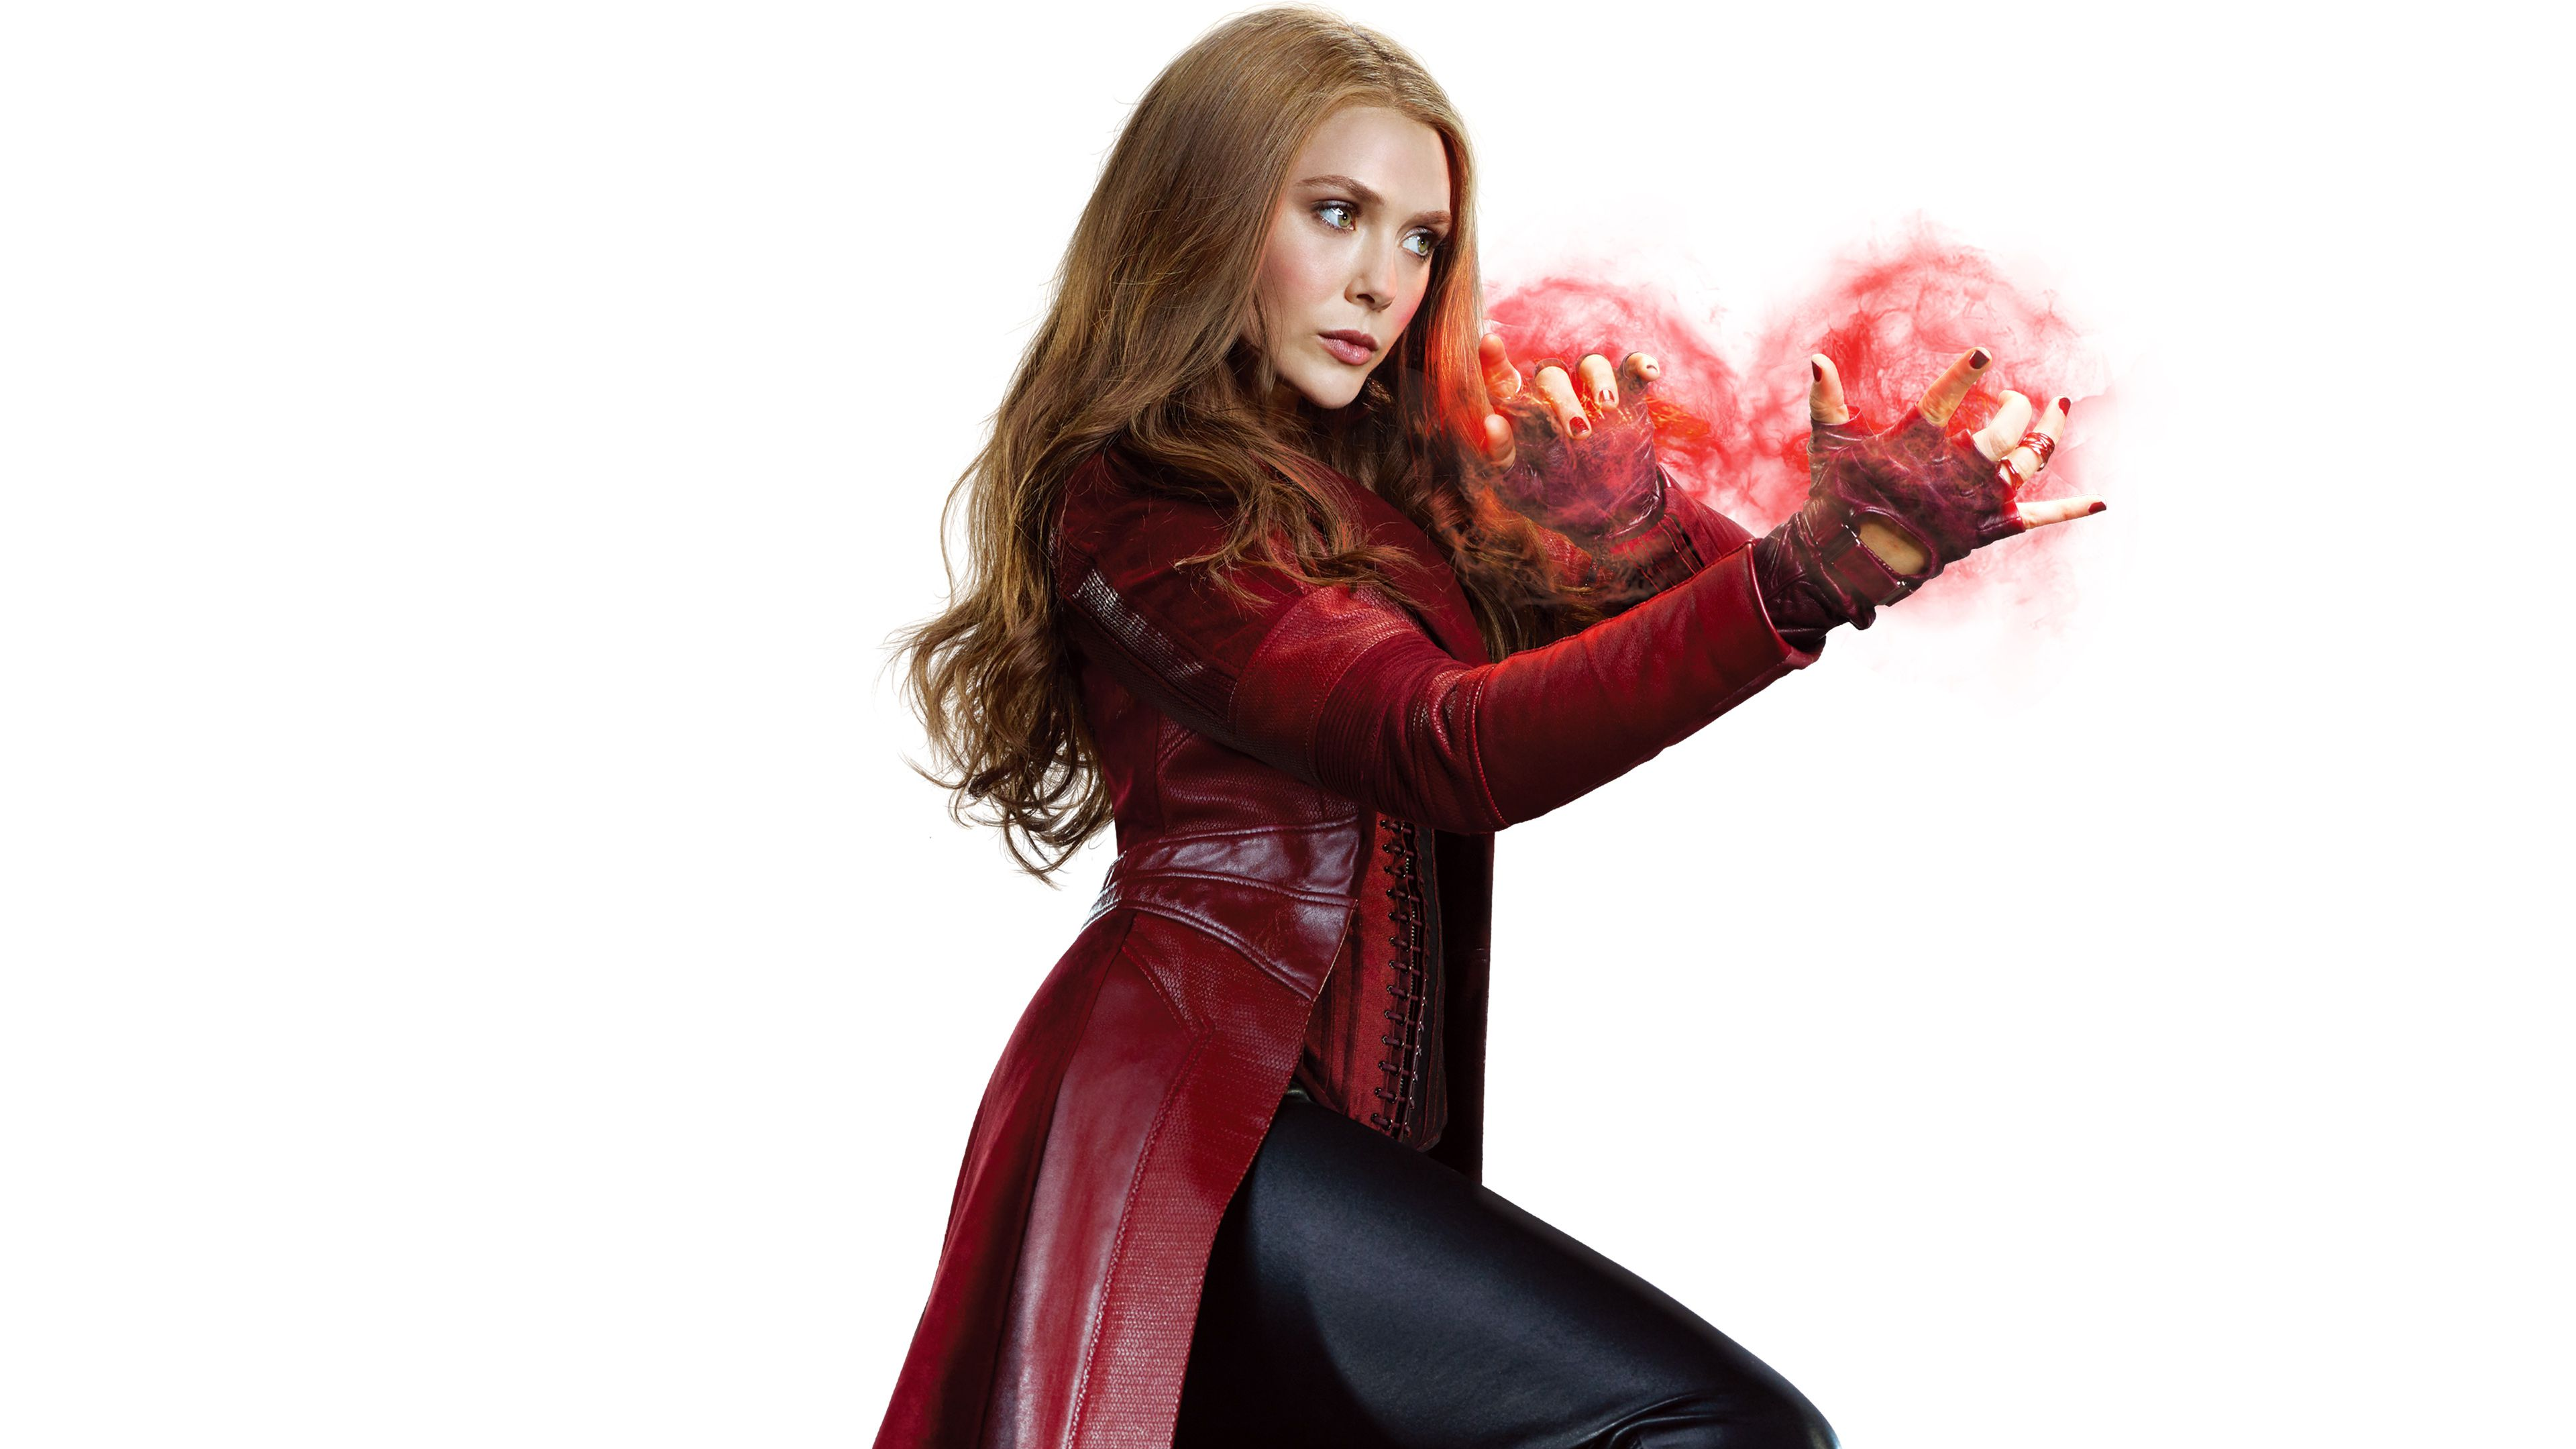 scarlet witch marvel avengers super hero hd 4k wallpaper